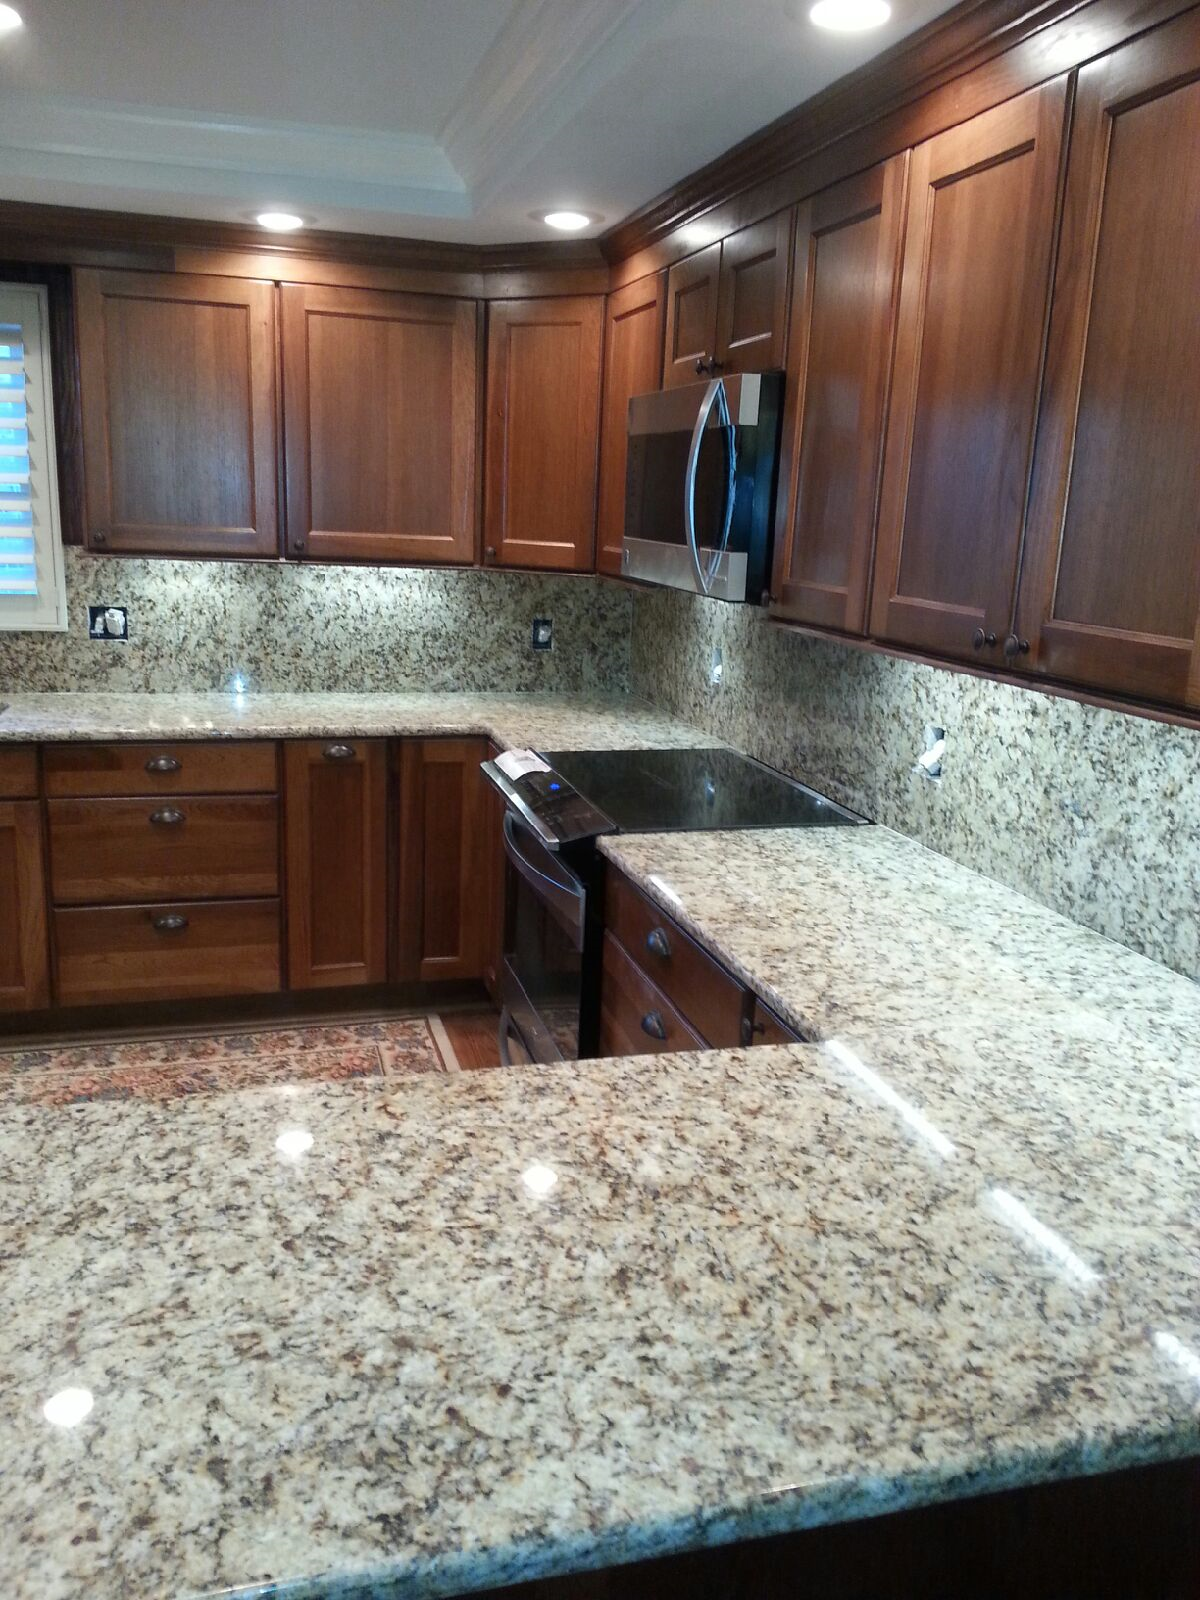 File:Granite Countertops.png - Wikimedia Commons